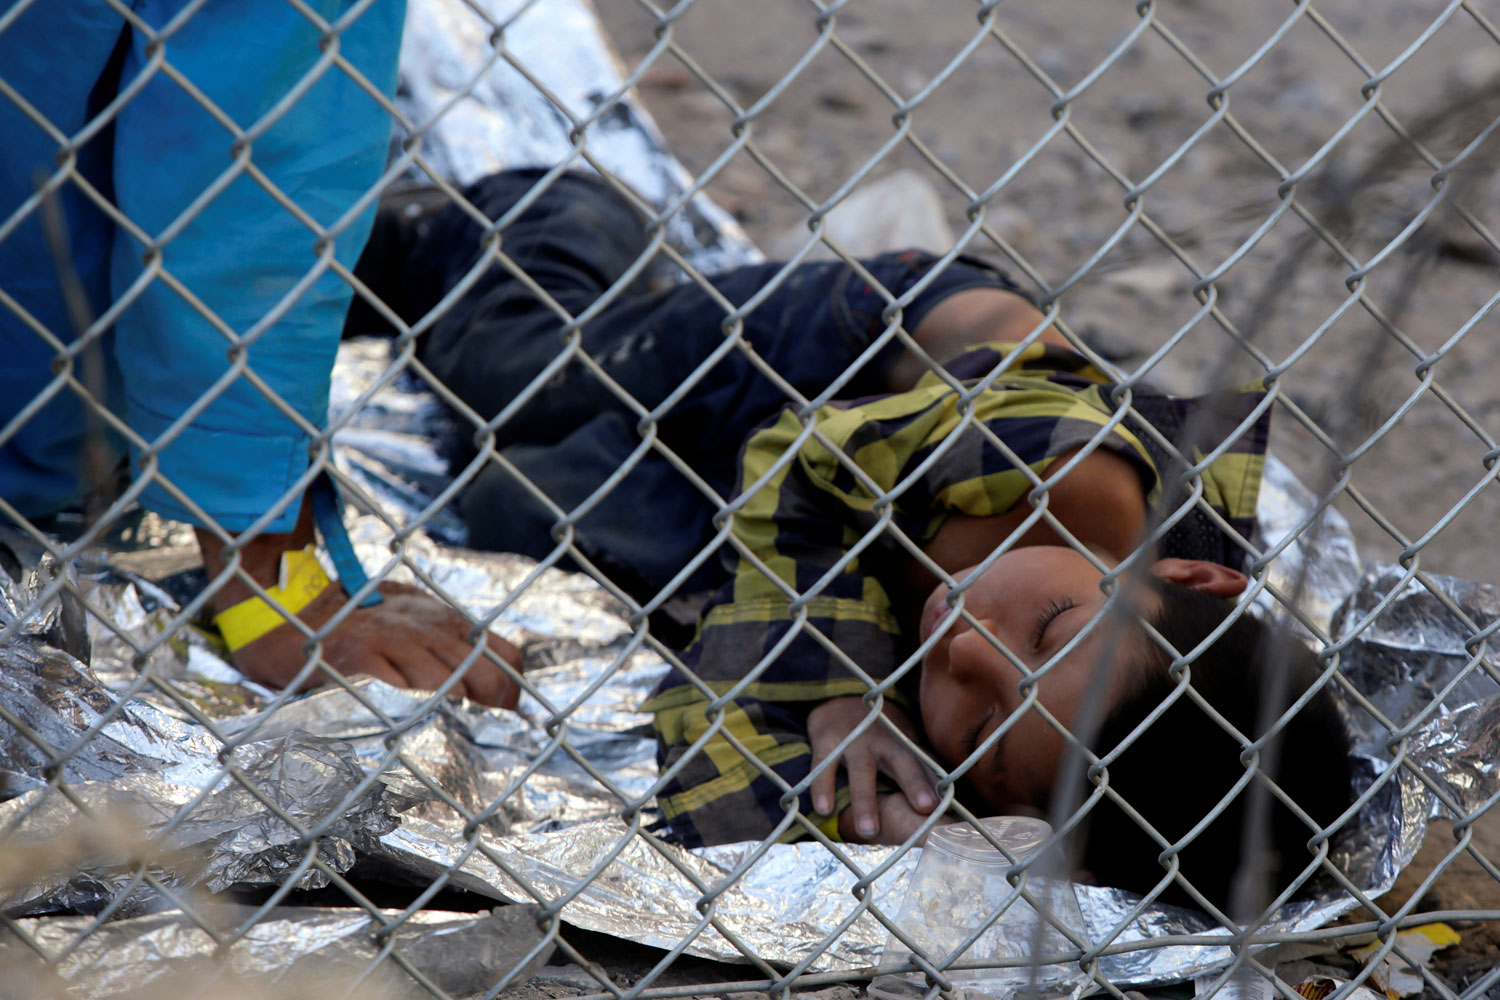 Trump Administration to Migrant Kids: No Soap for You!